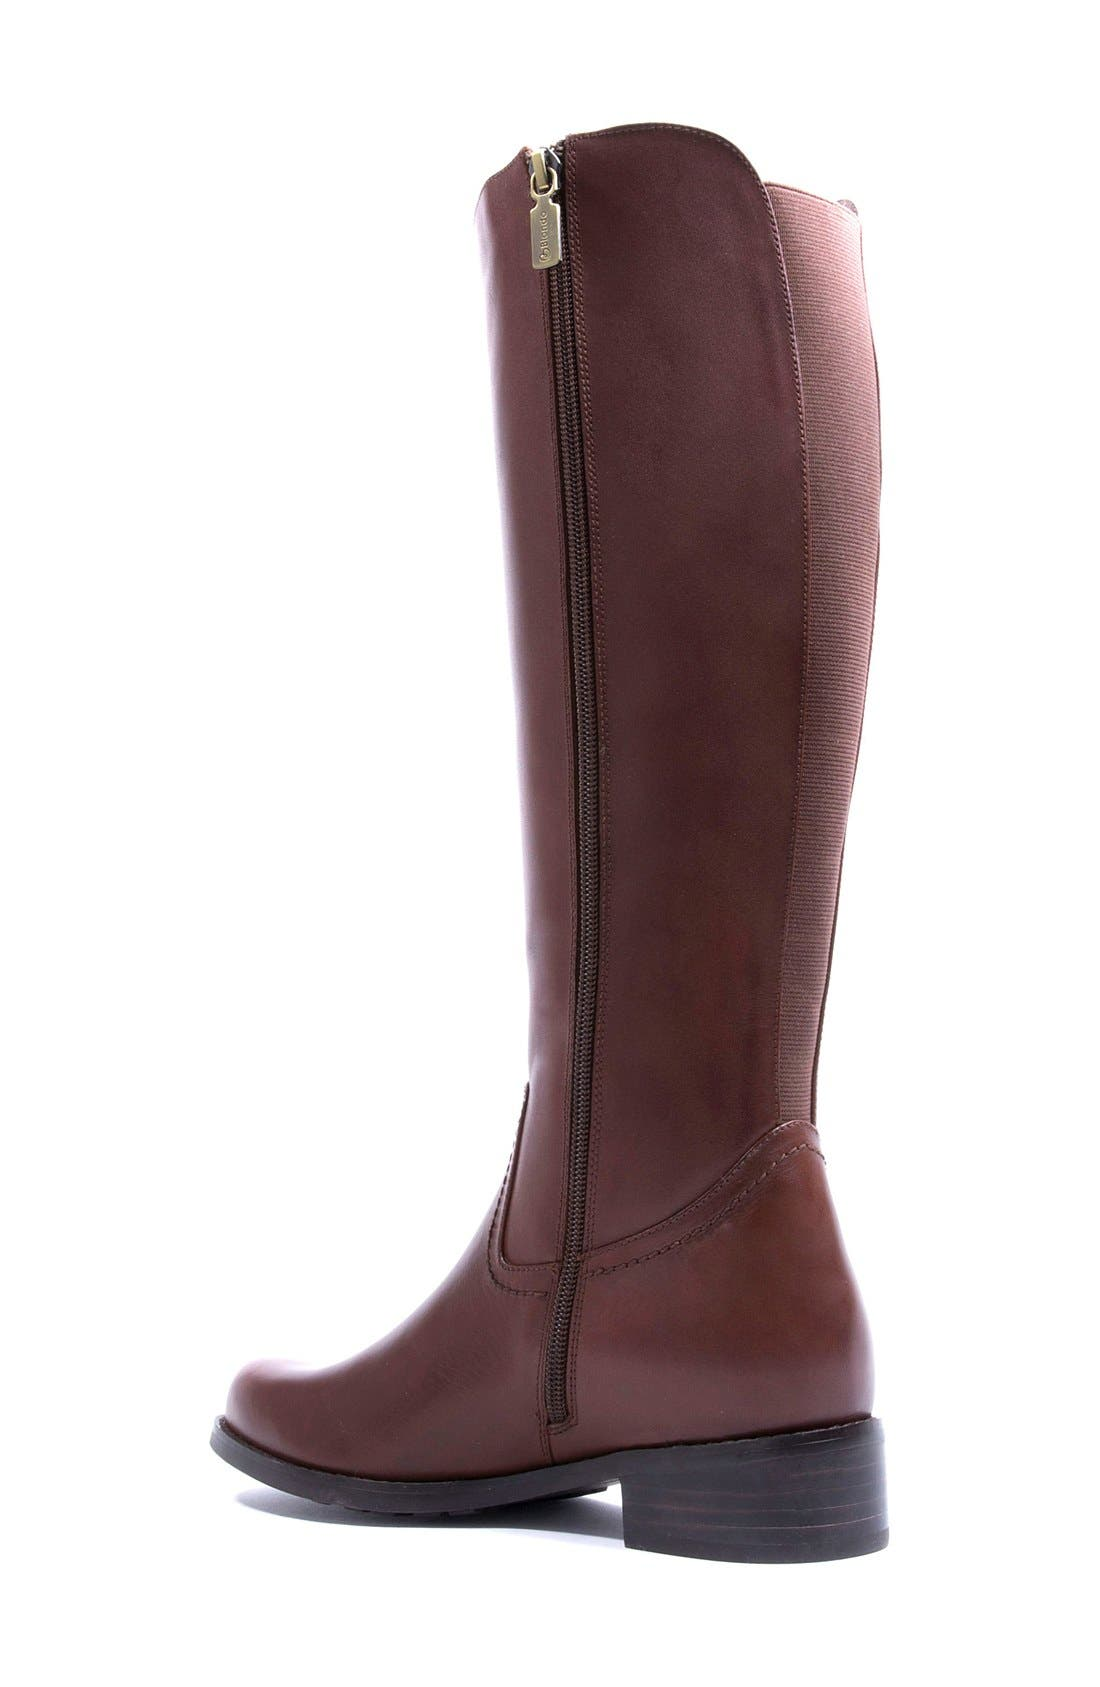 'Velvet' Waterproof Riding Boot,                             Alternate thumbnail 2, color,                             Butterscotch Leather